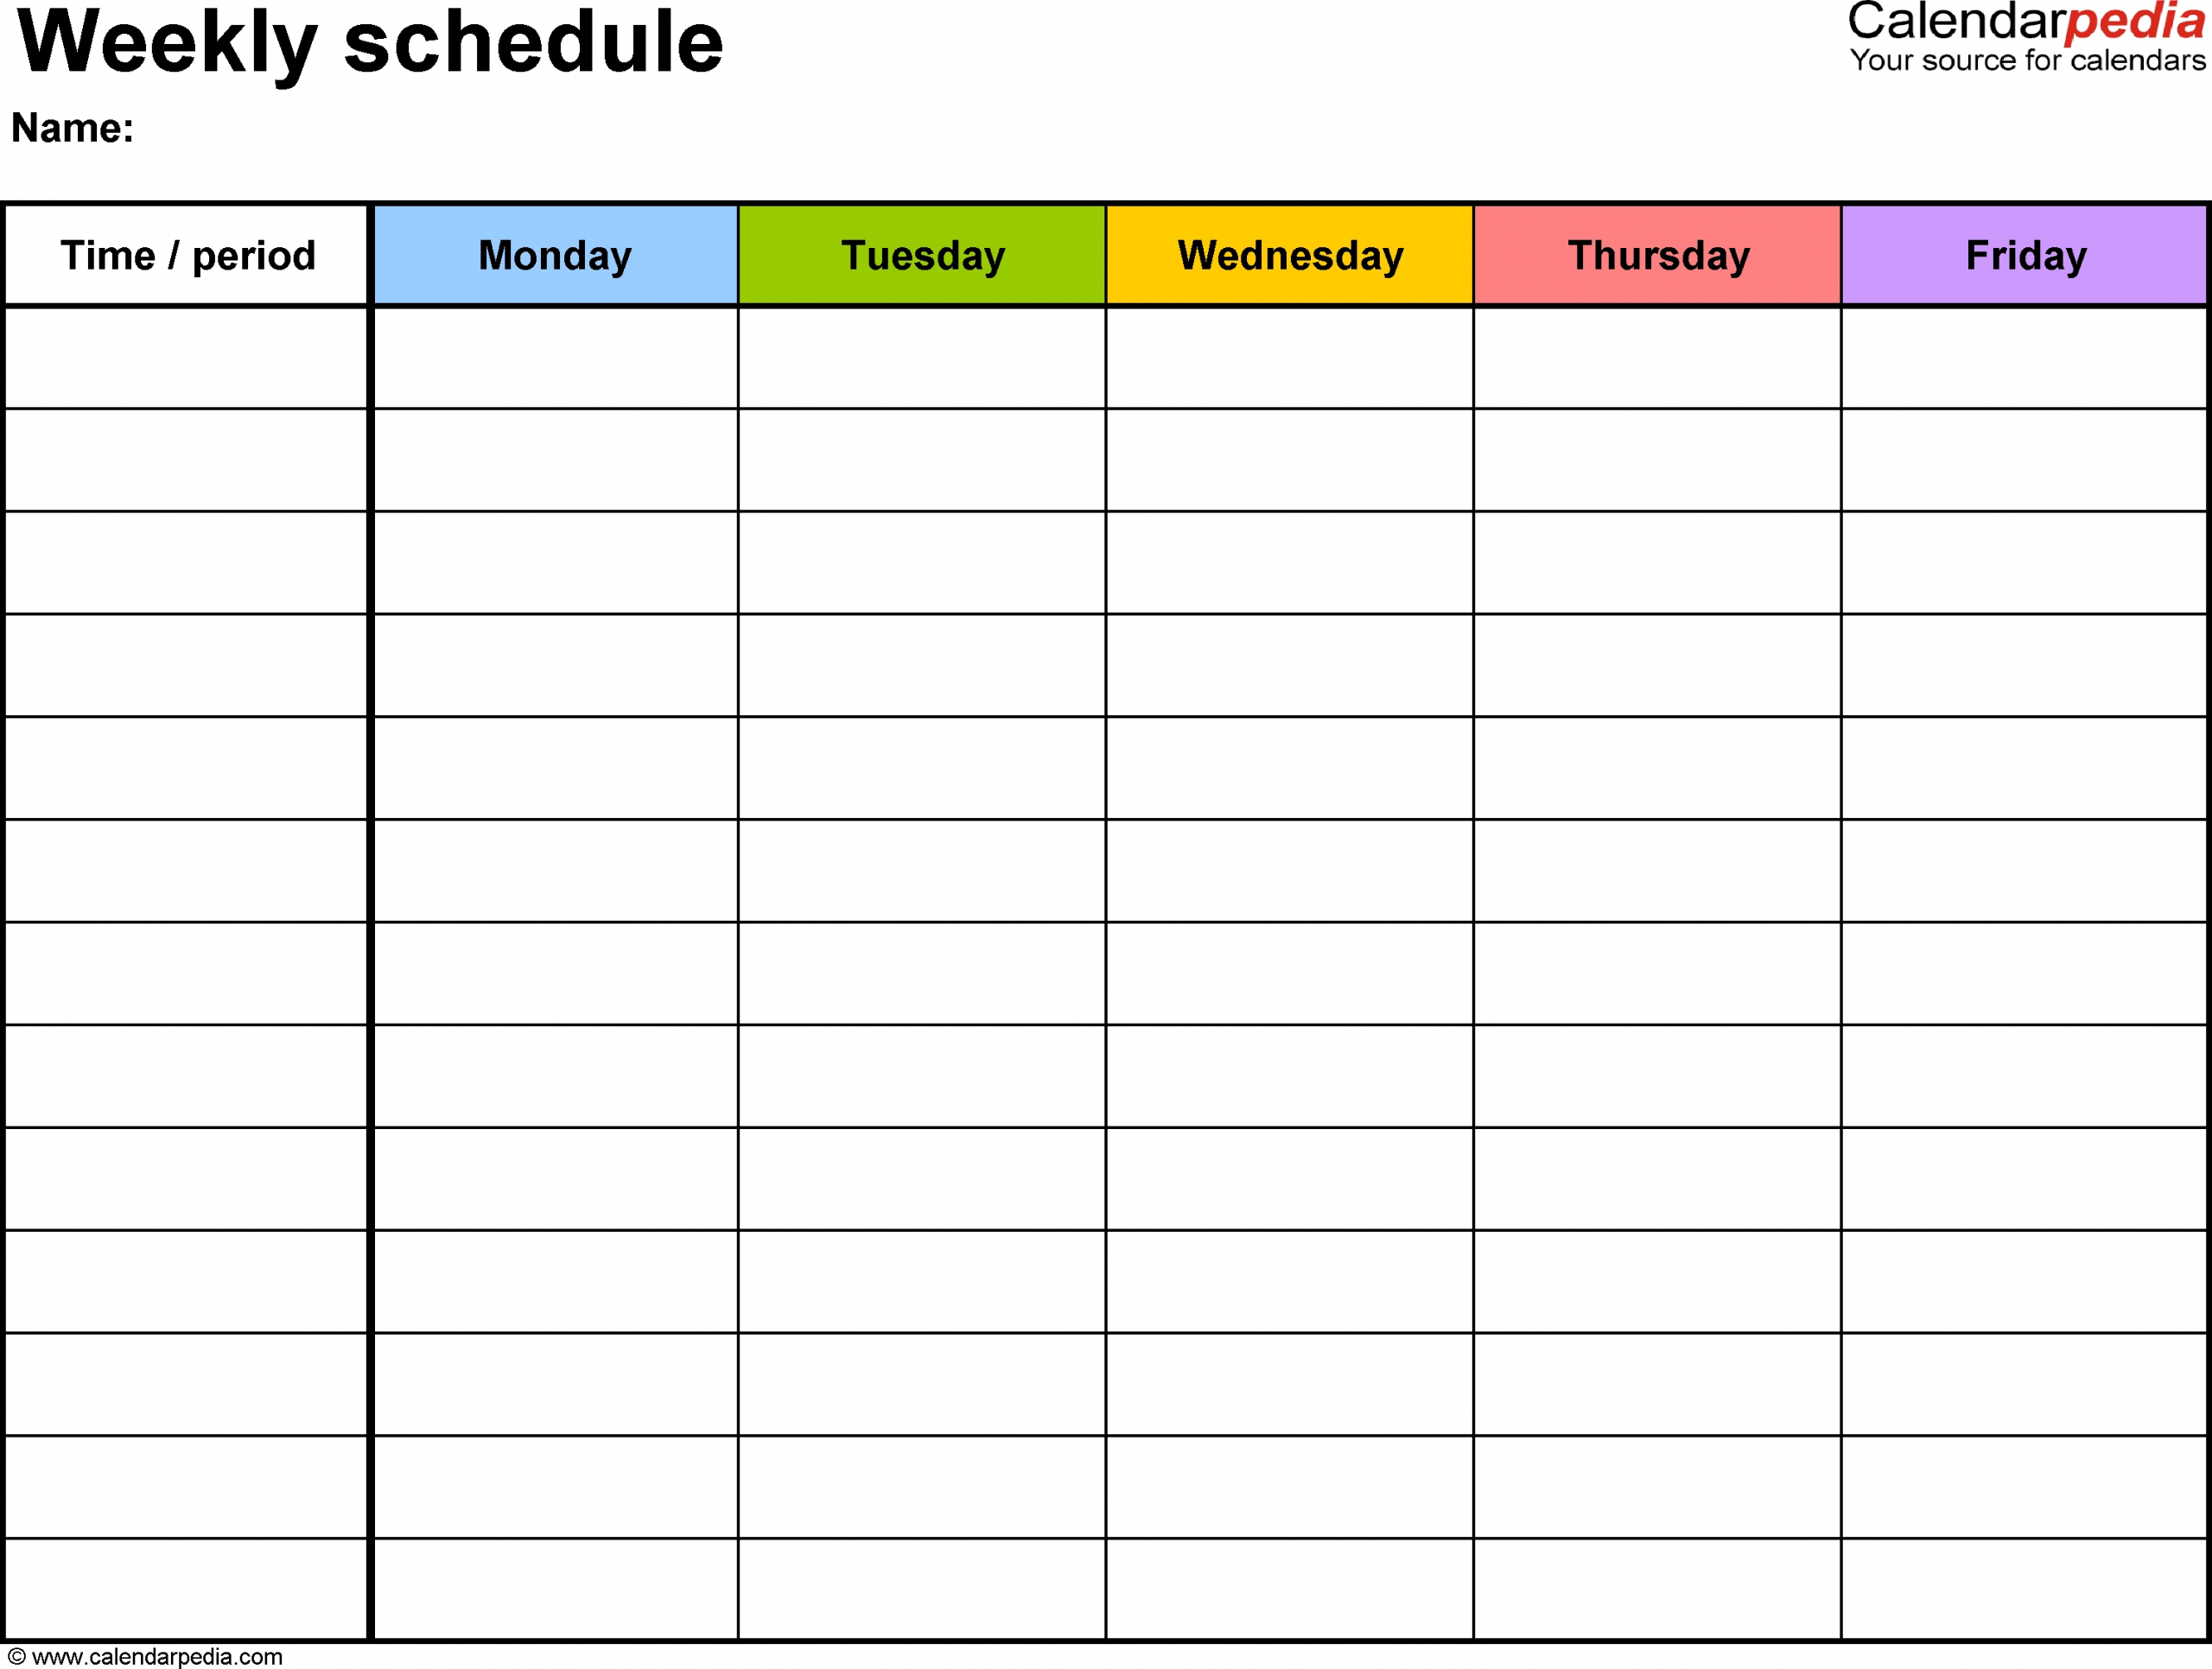 Free Weekly Schedule Templates For Word - 18 Templates throughout Monday To Friday Timetable Template